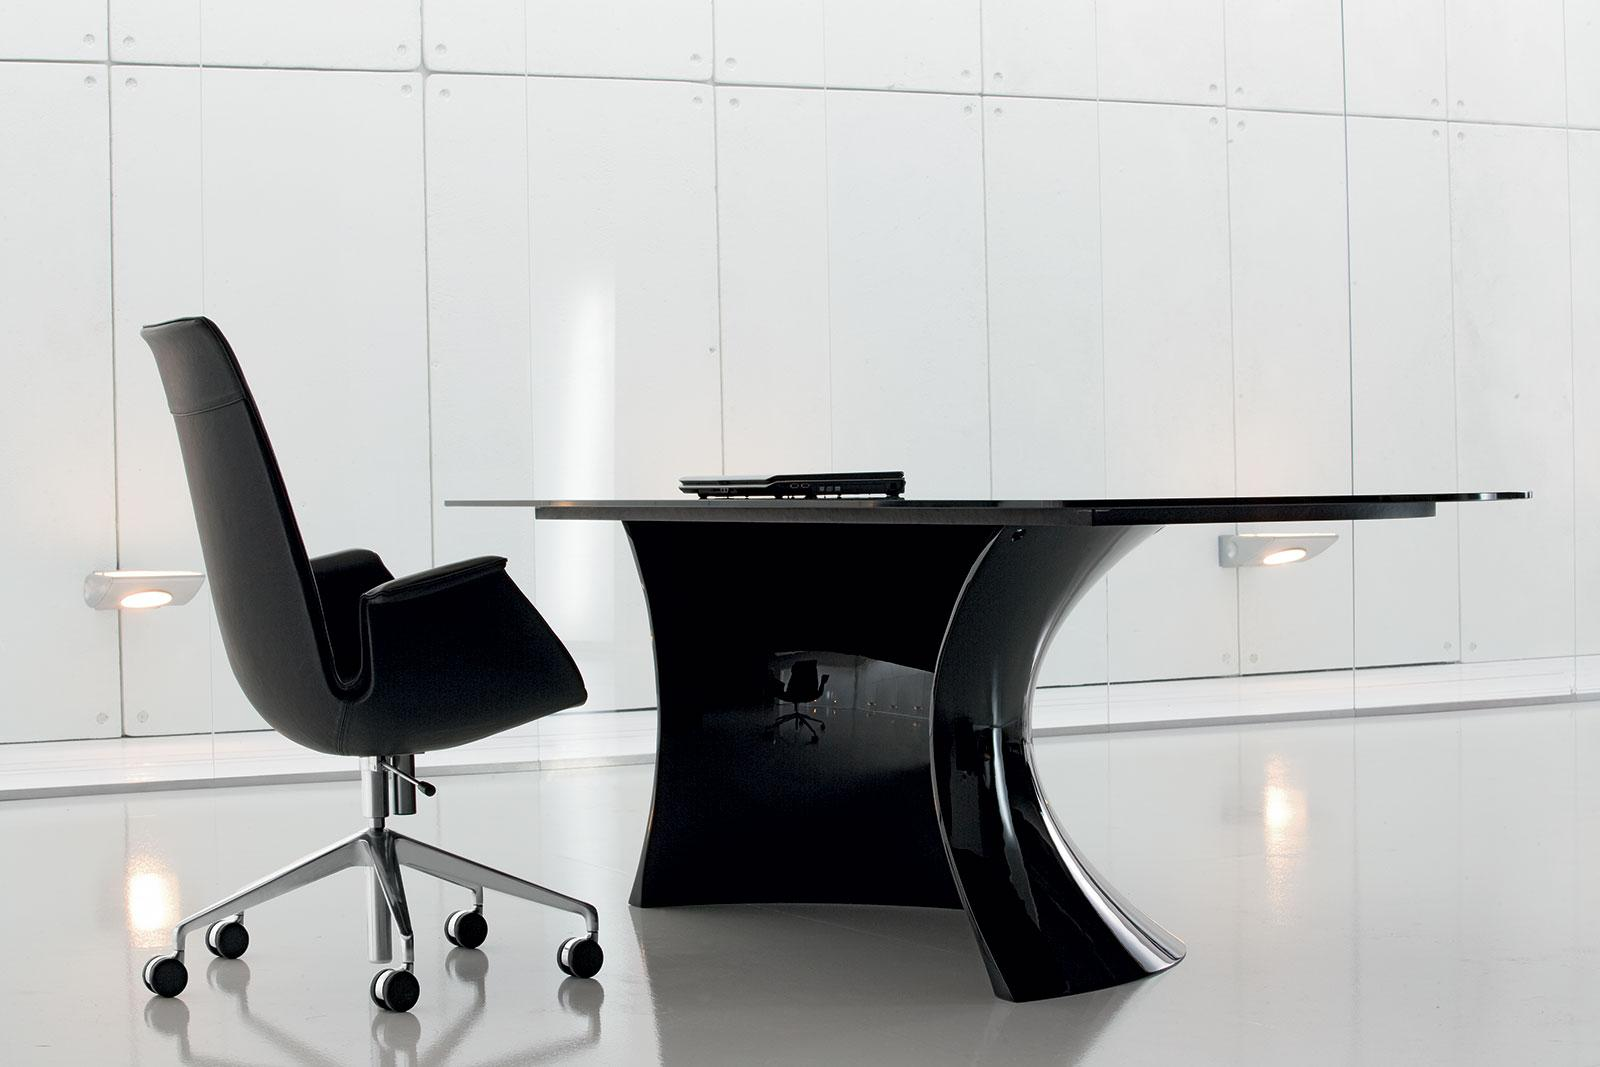 desk managerial furniture stores shops design delivery factors cristalplant italia market makers manufacturers quality retailers websites executive office